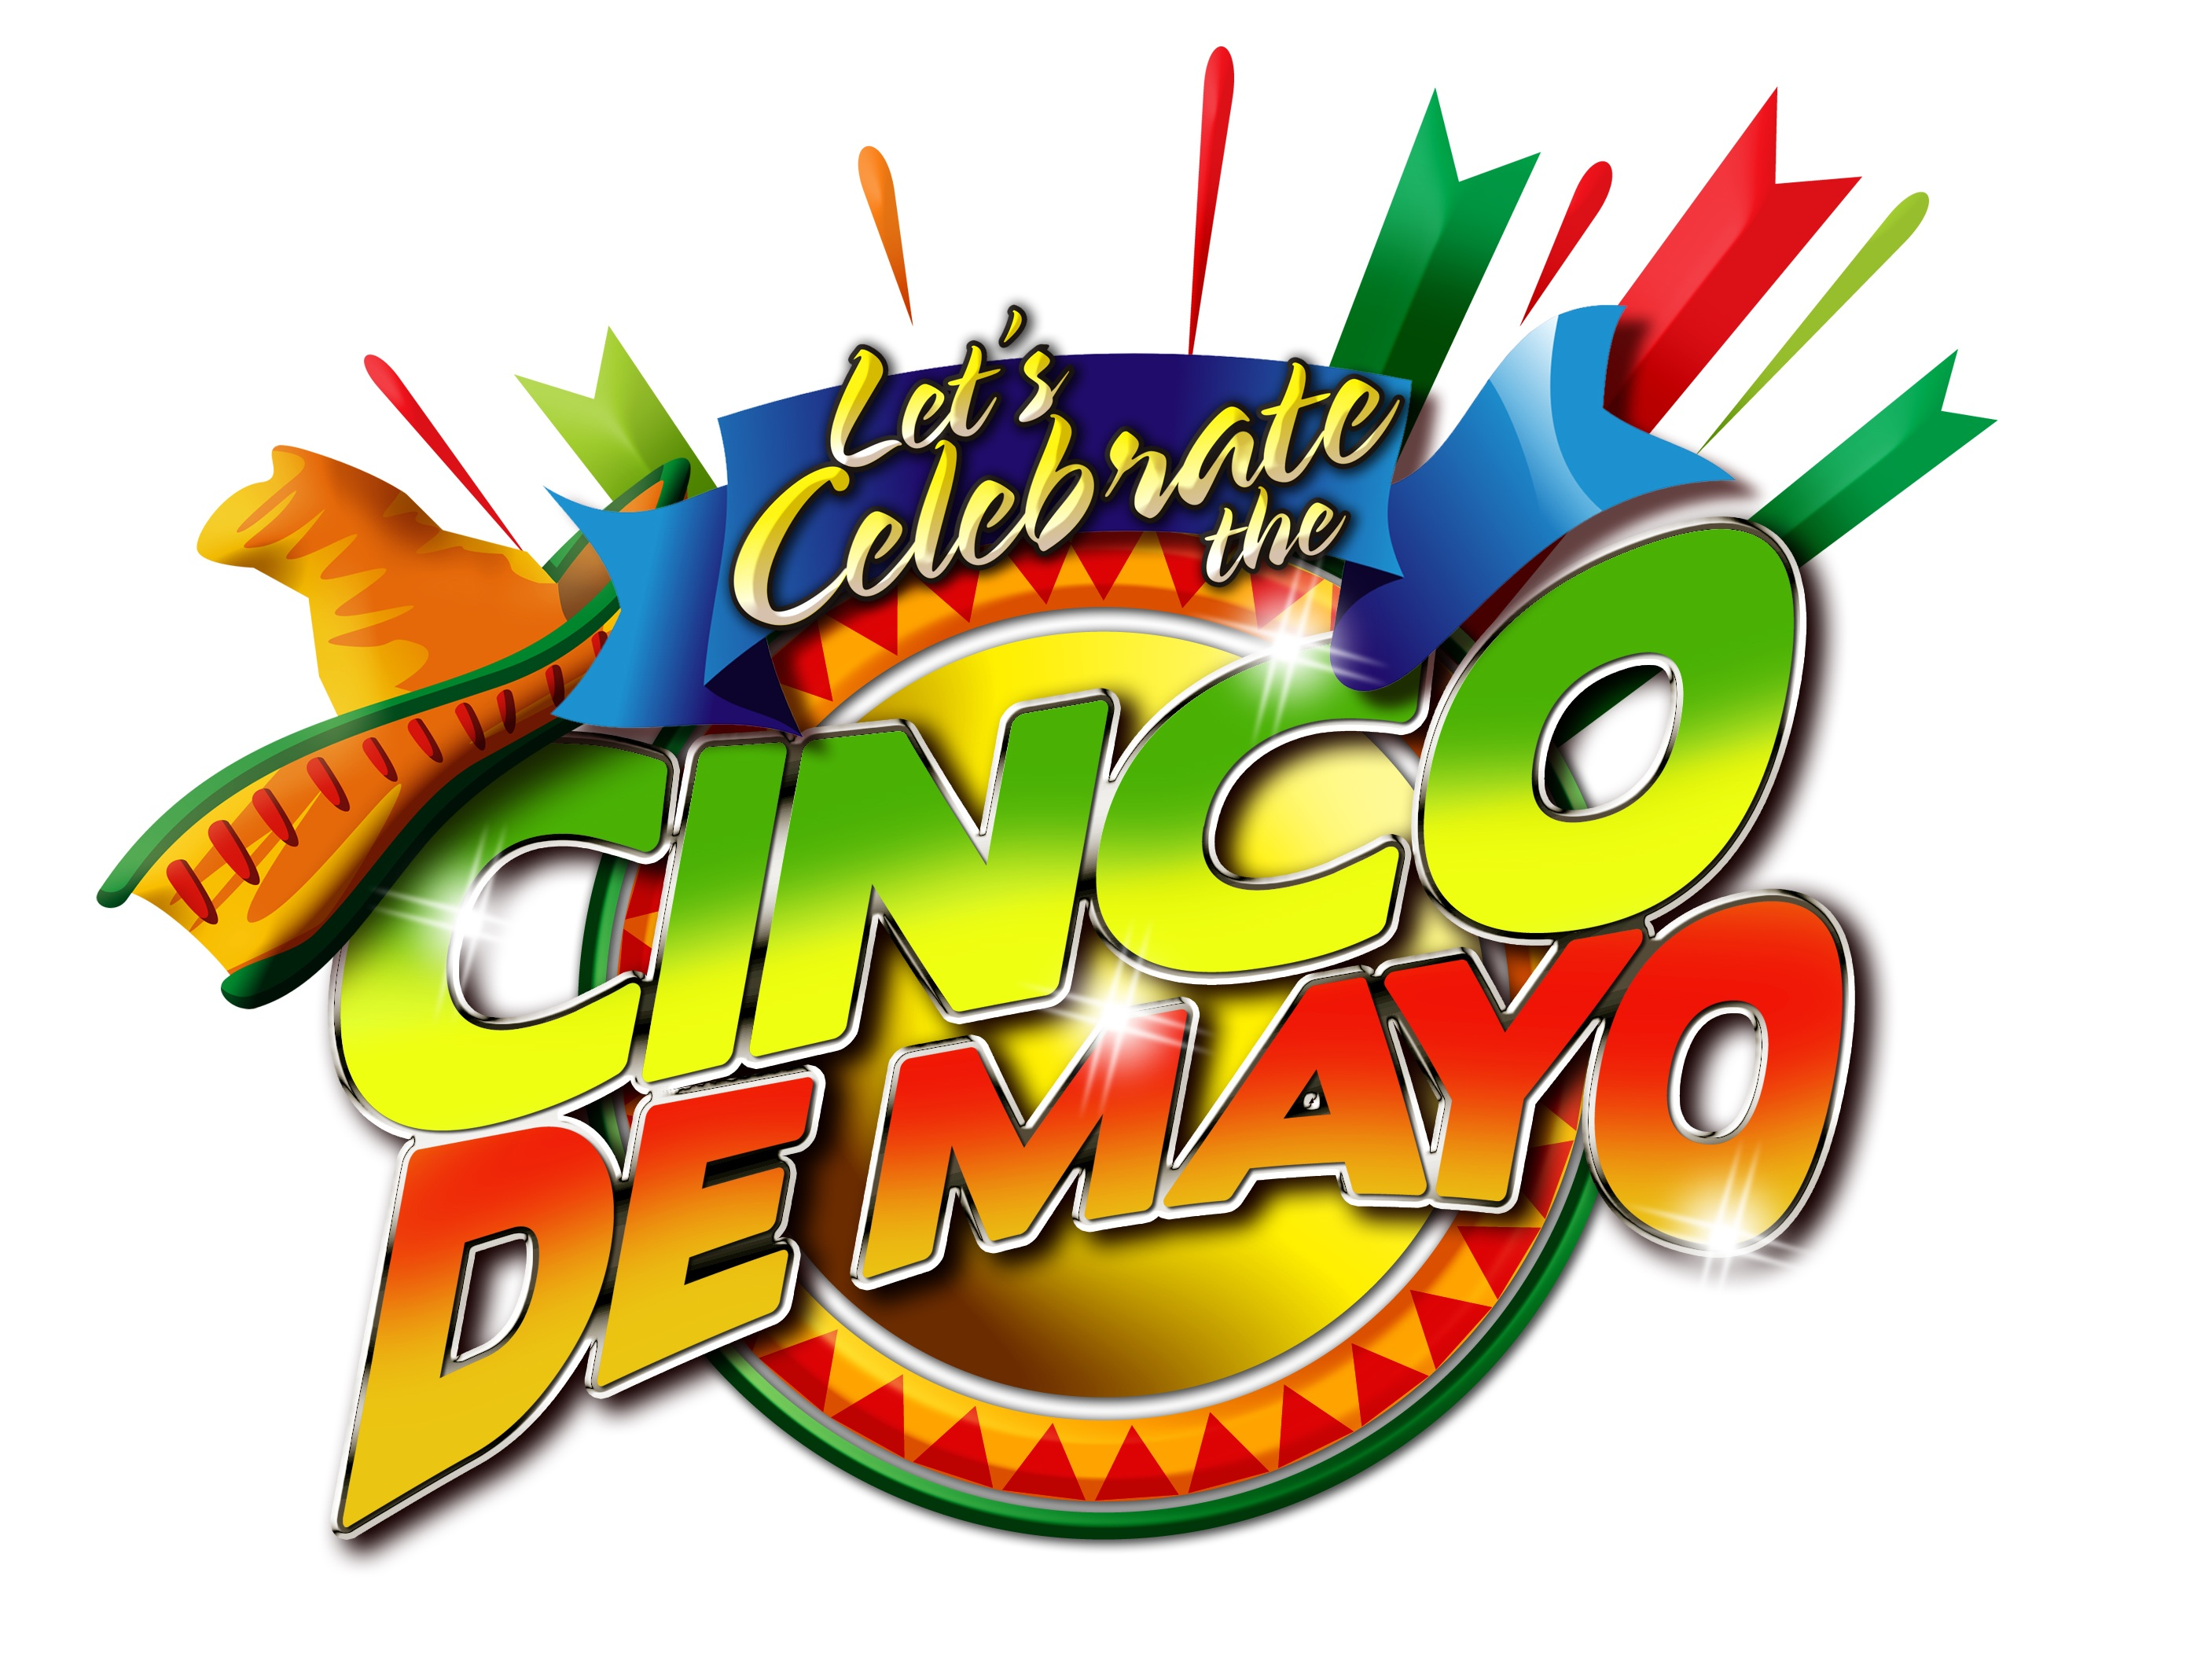 Cinco Events For Cinco De Mayo